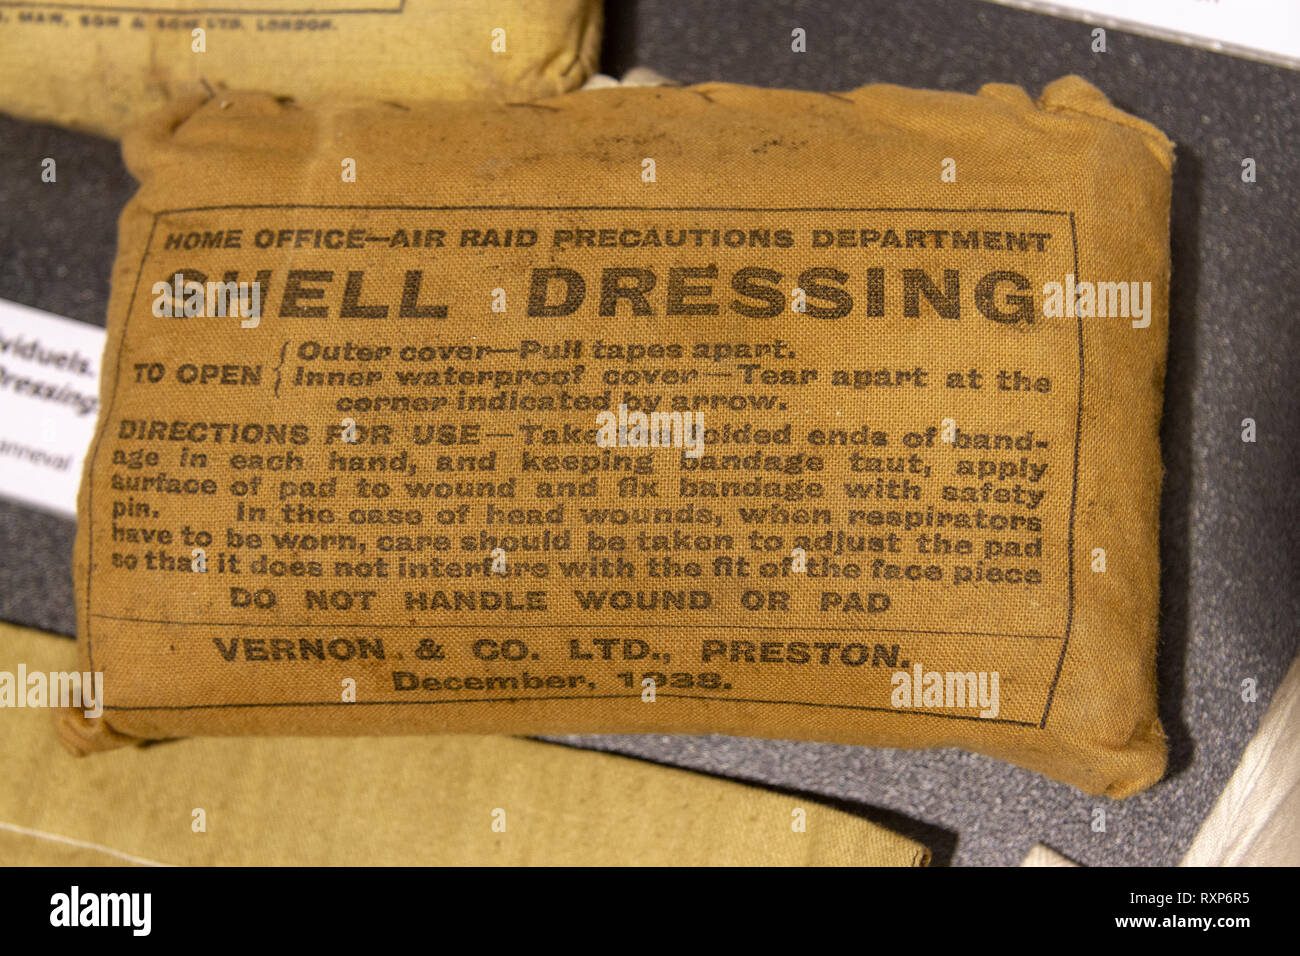 A British Army issued shell dressing on display at the Juno Beach Centre, Courseulles-sur-Mer, Normandy, France. - Stock Image